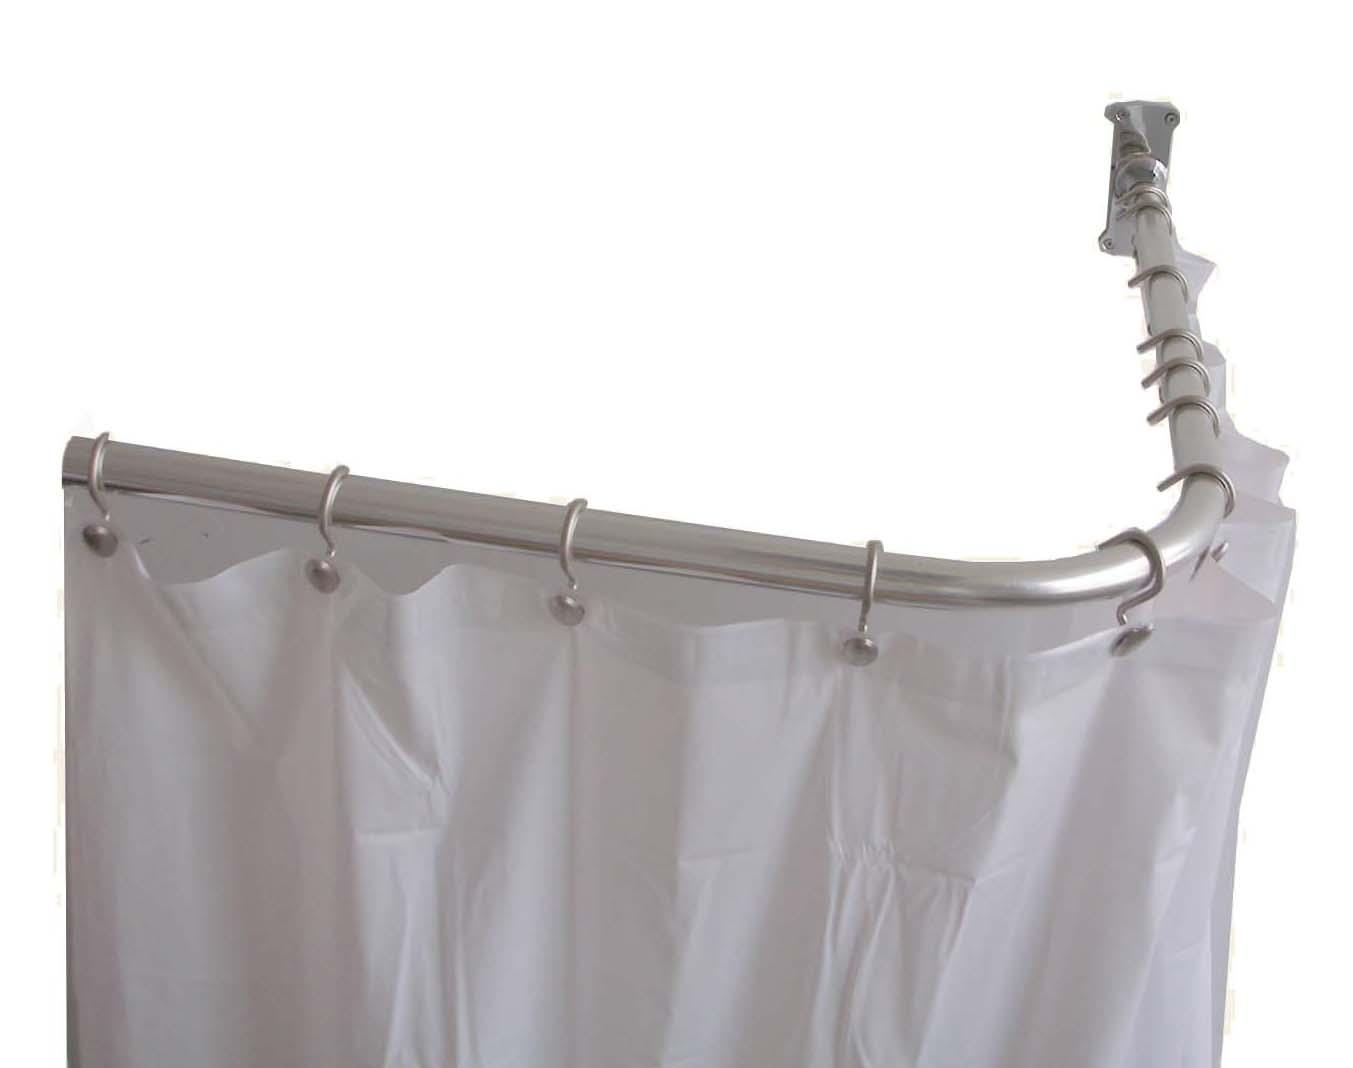 Most Decorative Shower Curtain Rods Best Home Decor Inspirations Throughout L Shaped Shower Curtain Rods (Image 21 of 25)